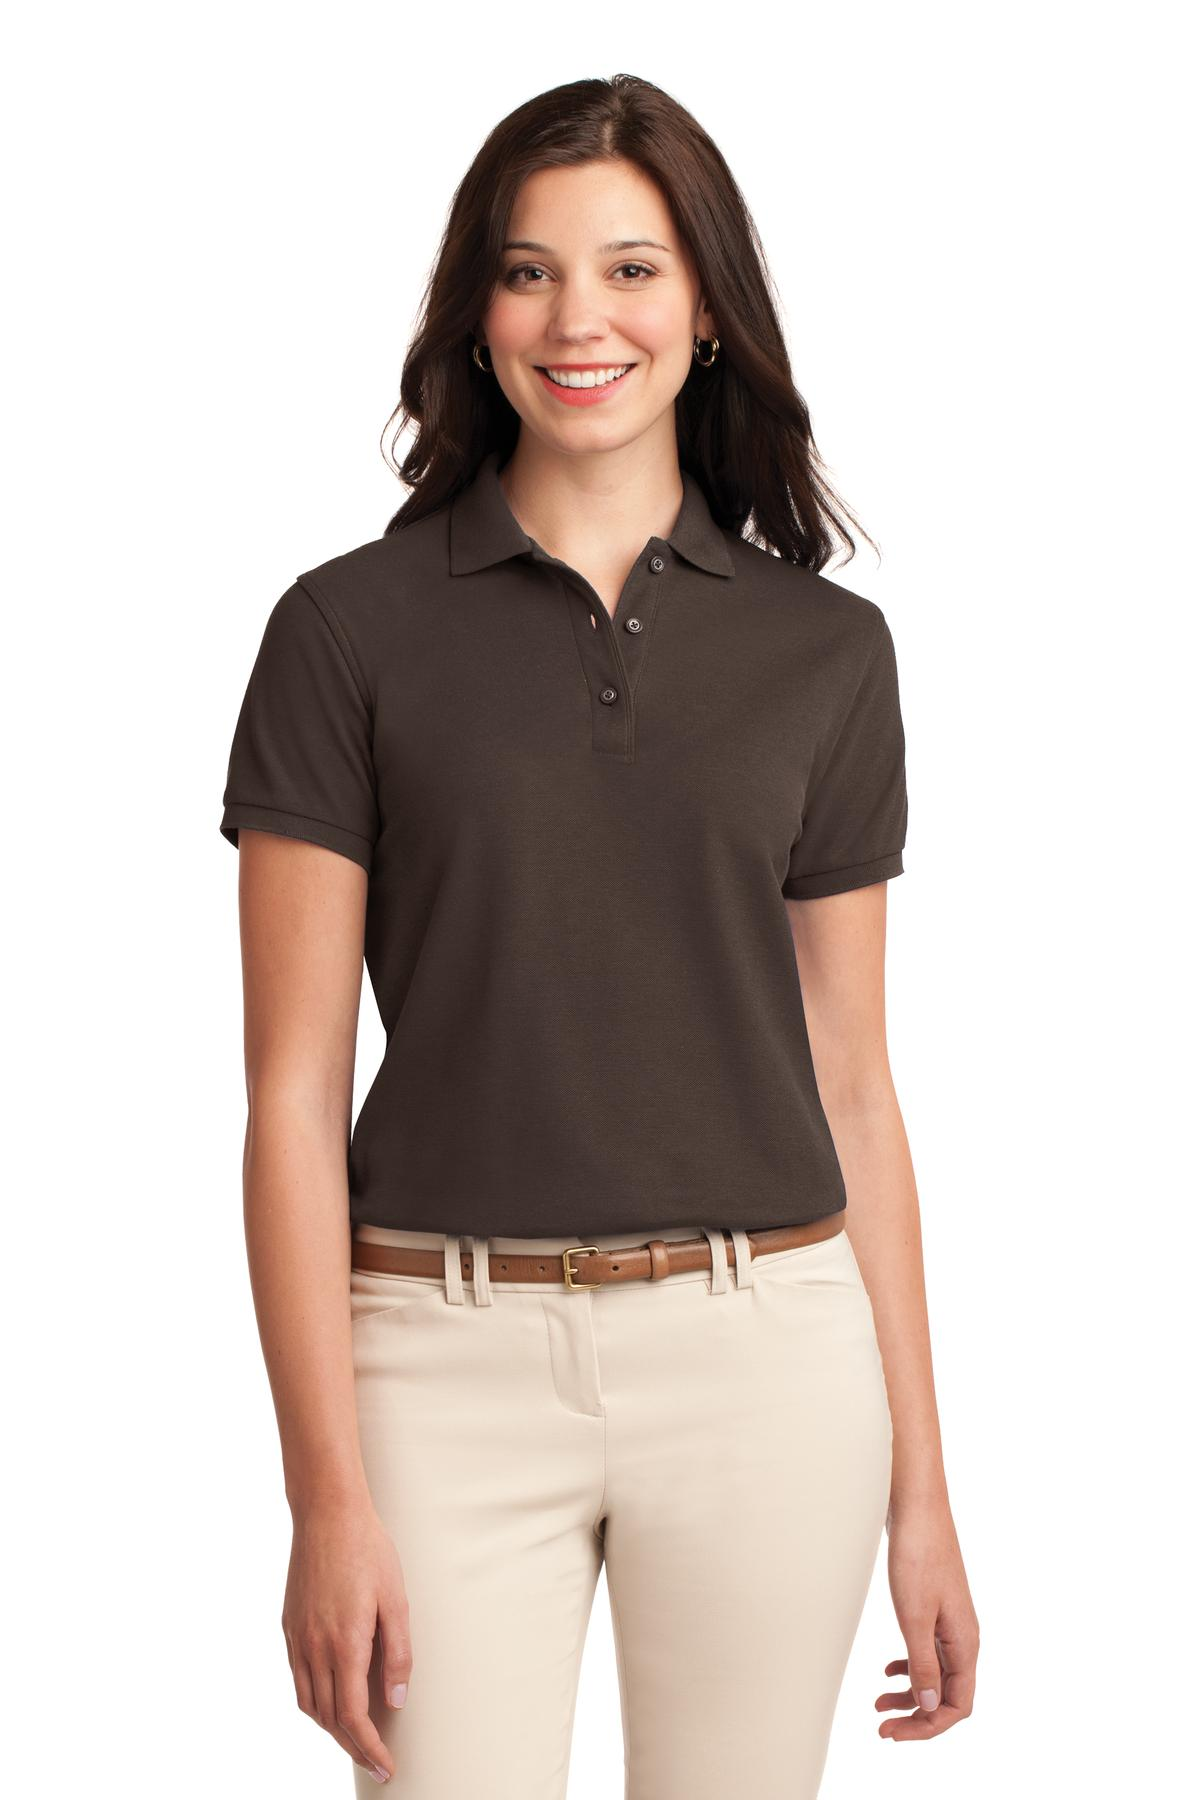 Maui Blue Port Authority Ladies Silk Touch Polo.